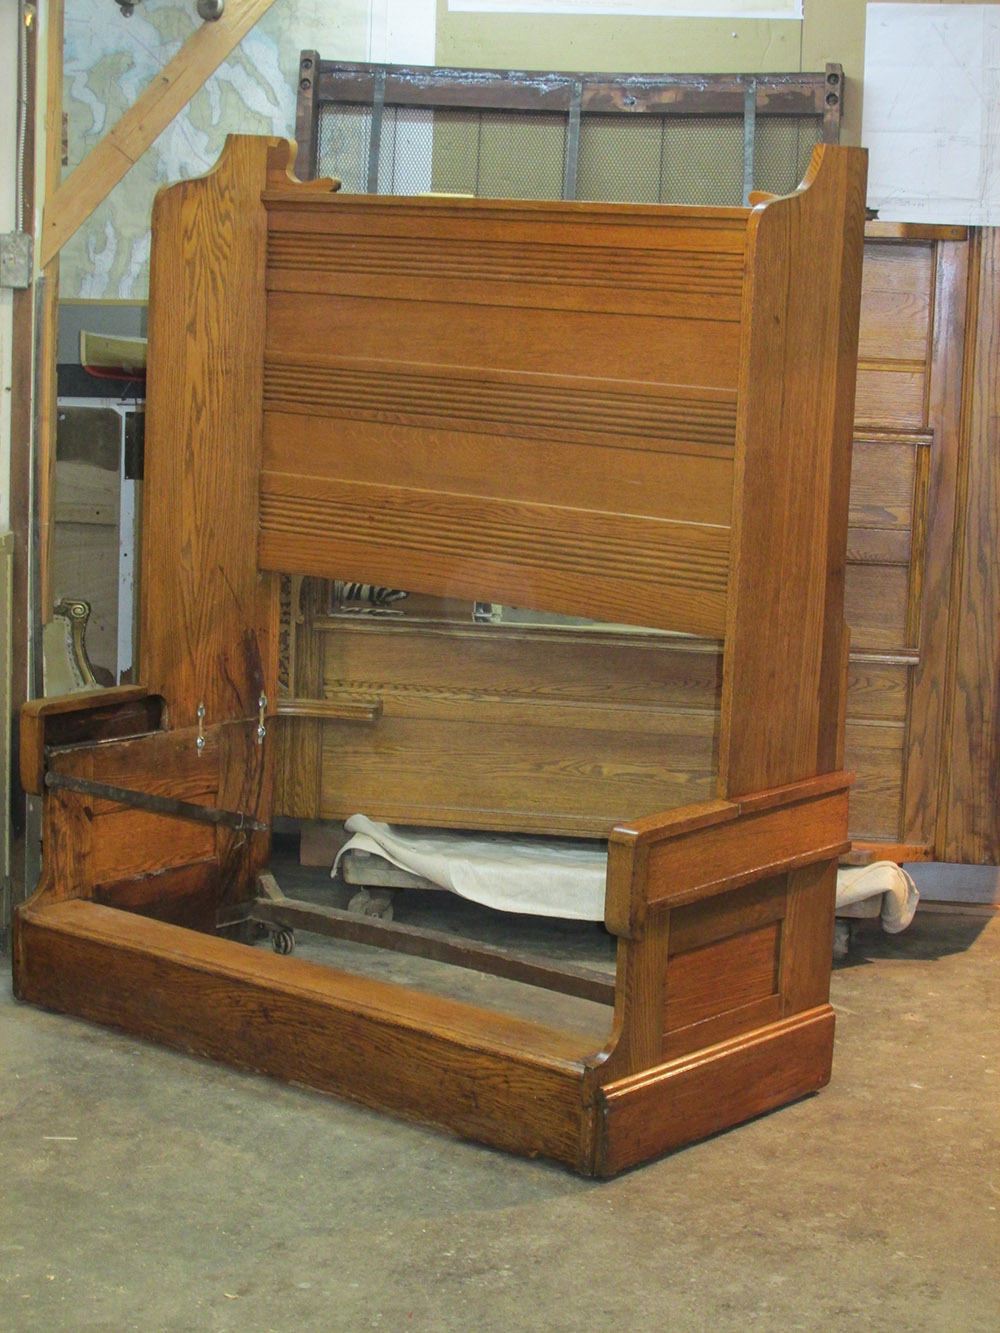 Folding bed restoration plum studio furniture restoration for Furniture refinishing seattle